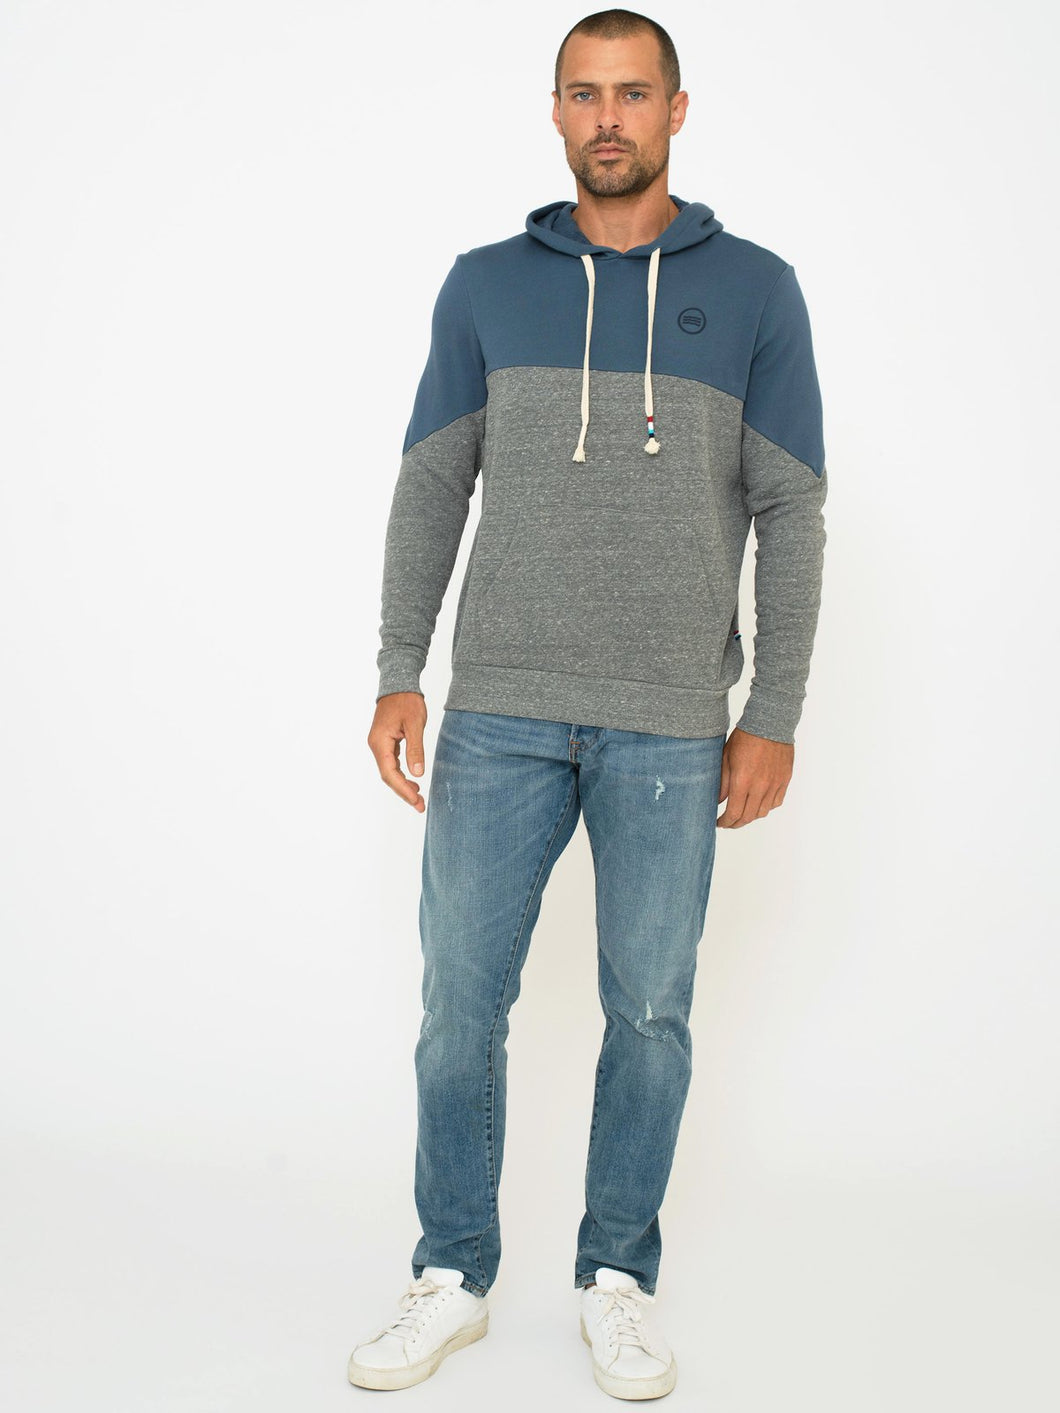 Sol Angeles Colorblock Hoodie in Jasper